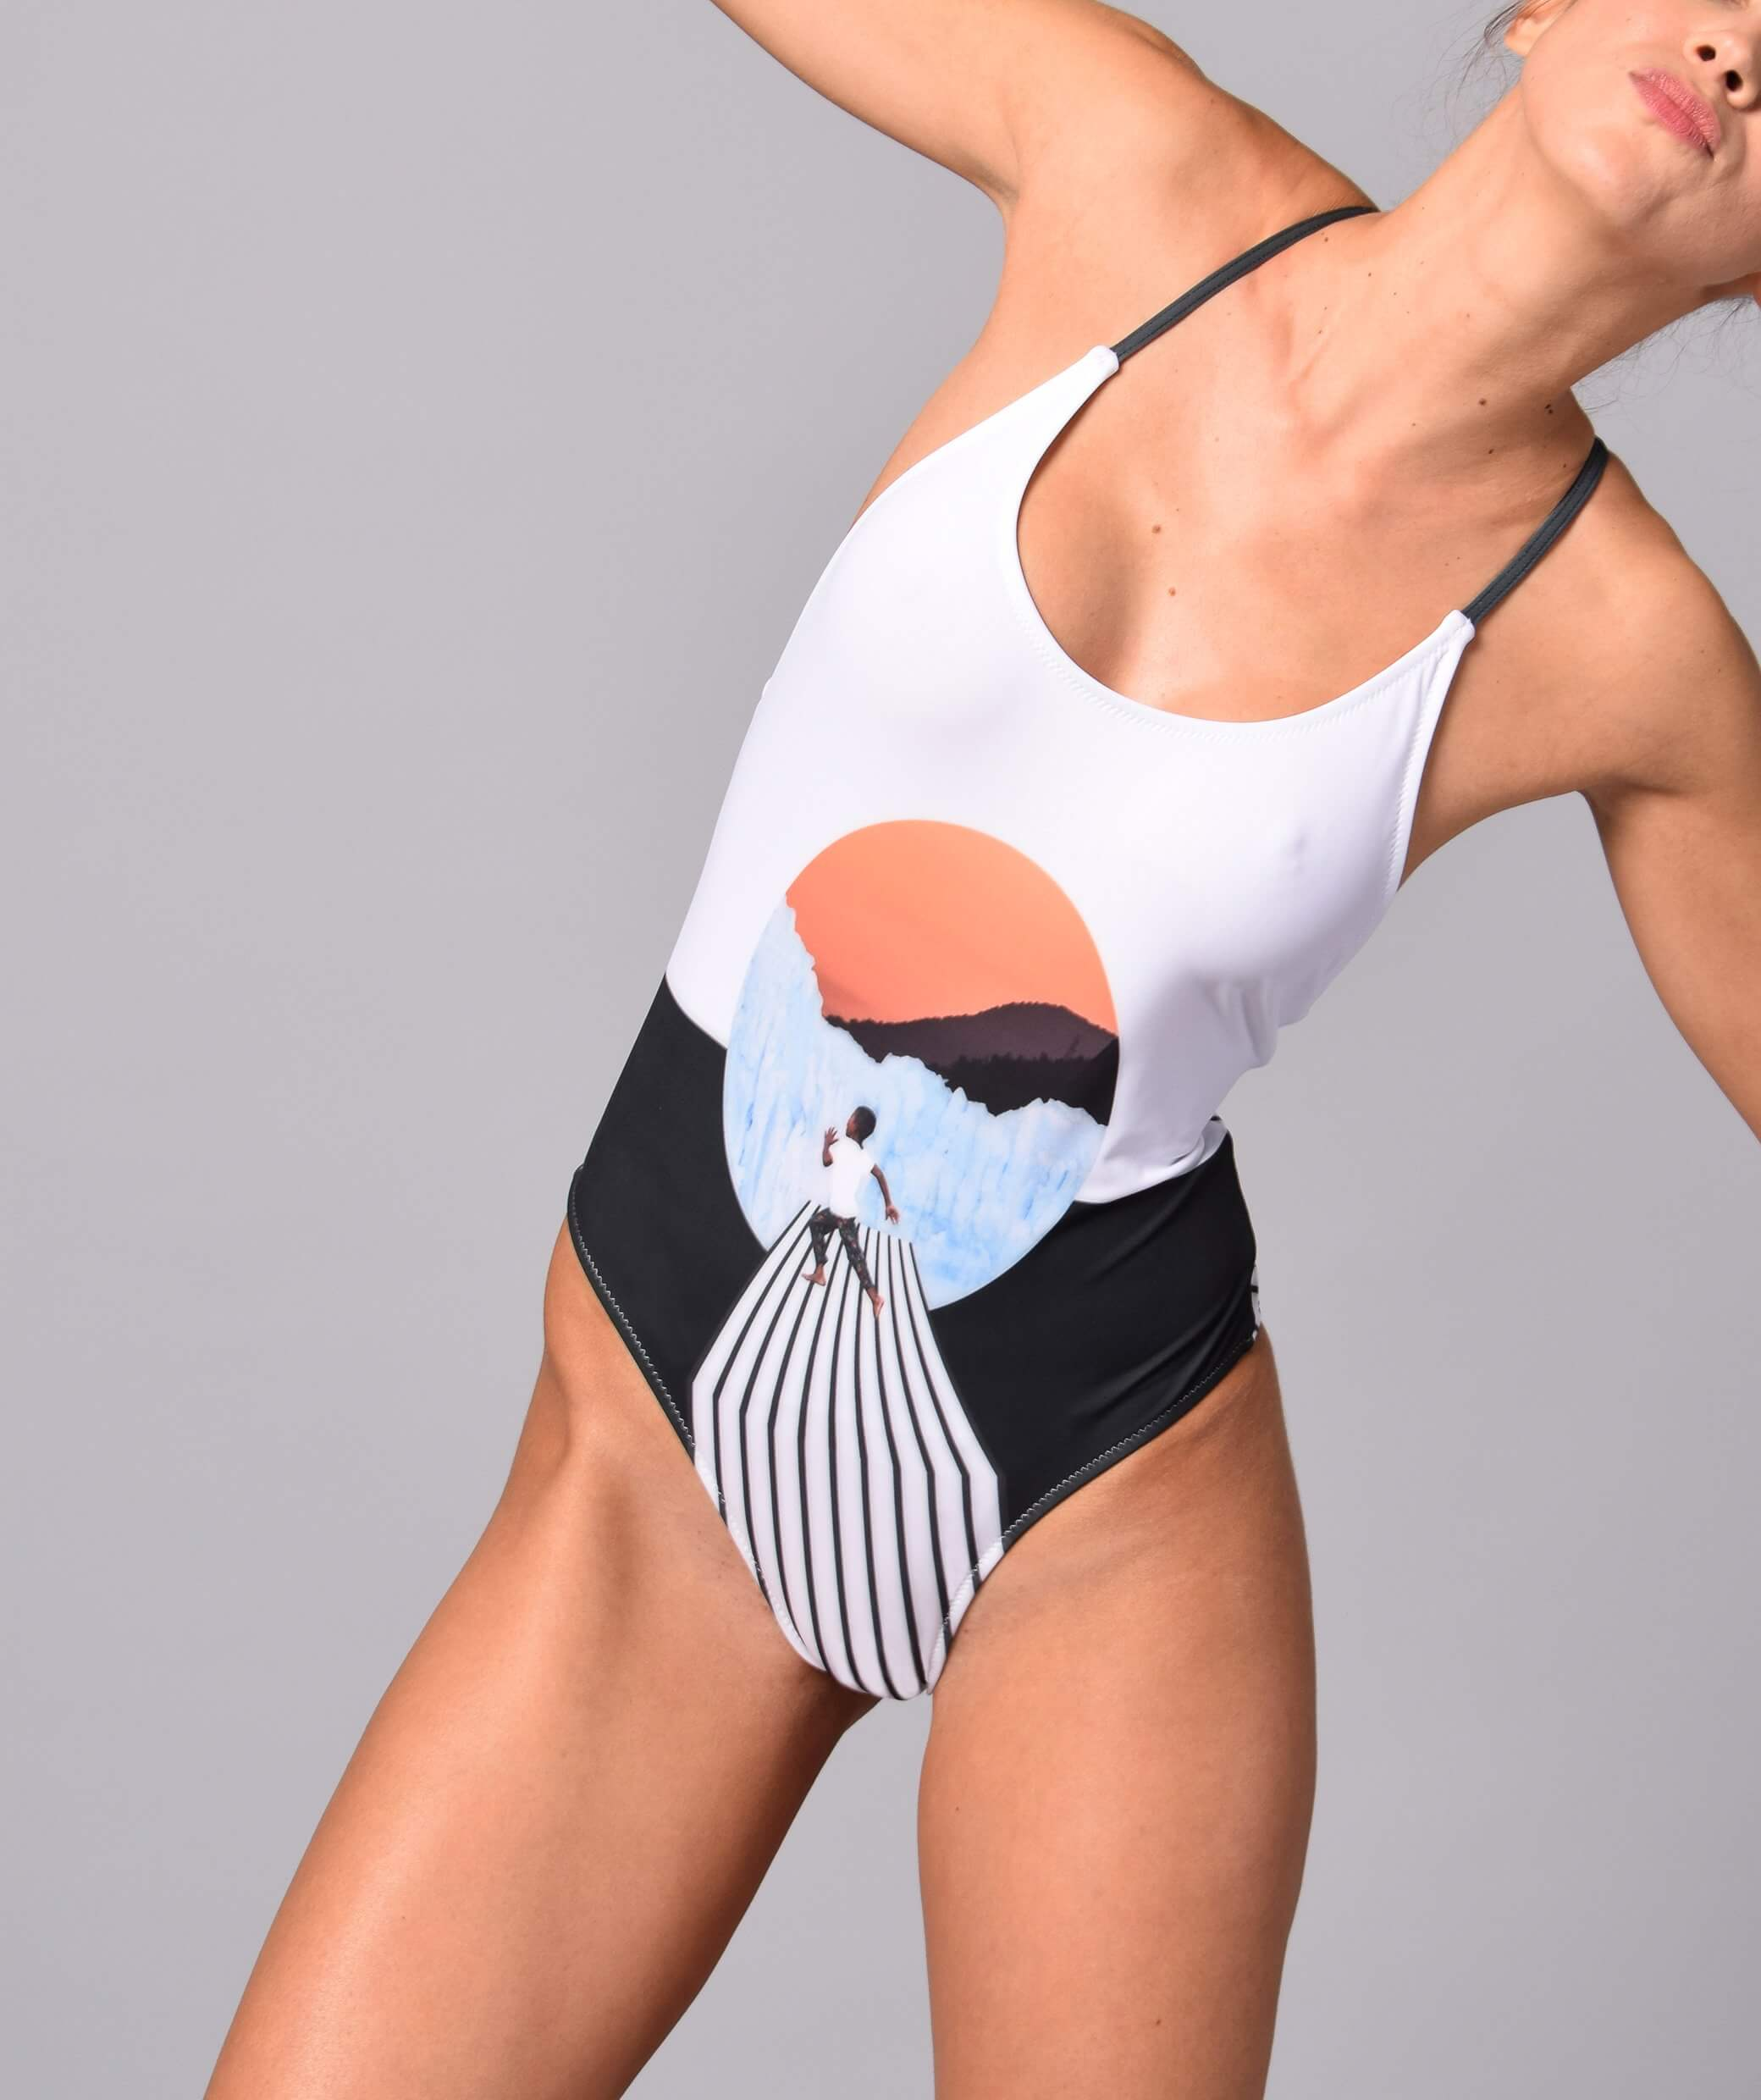 Boogaloo Girl wearing One-Piece Swimsuit NINITO Cross Back - Front